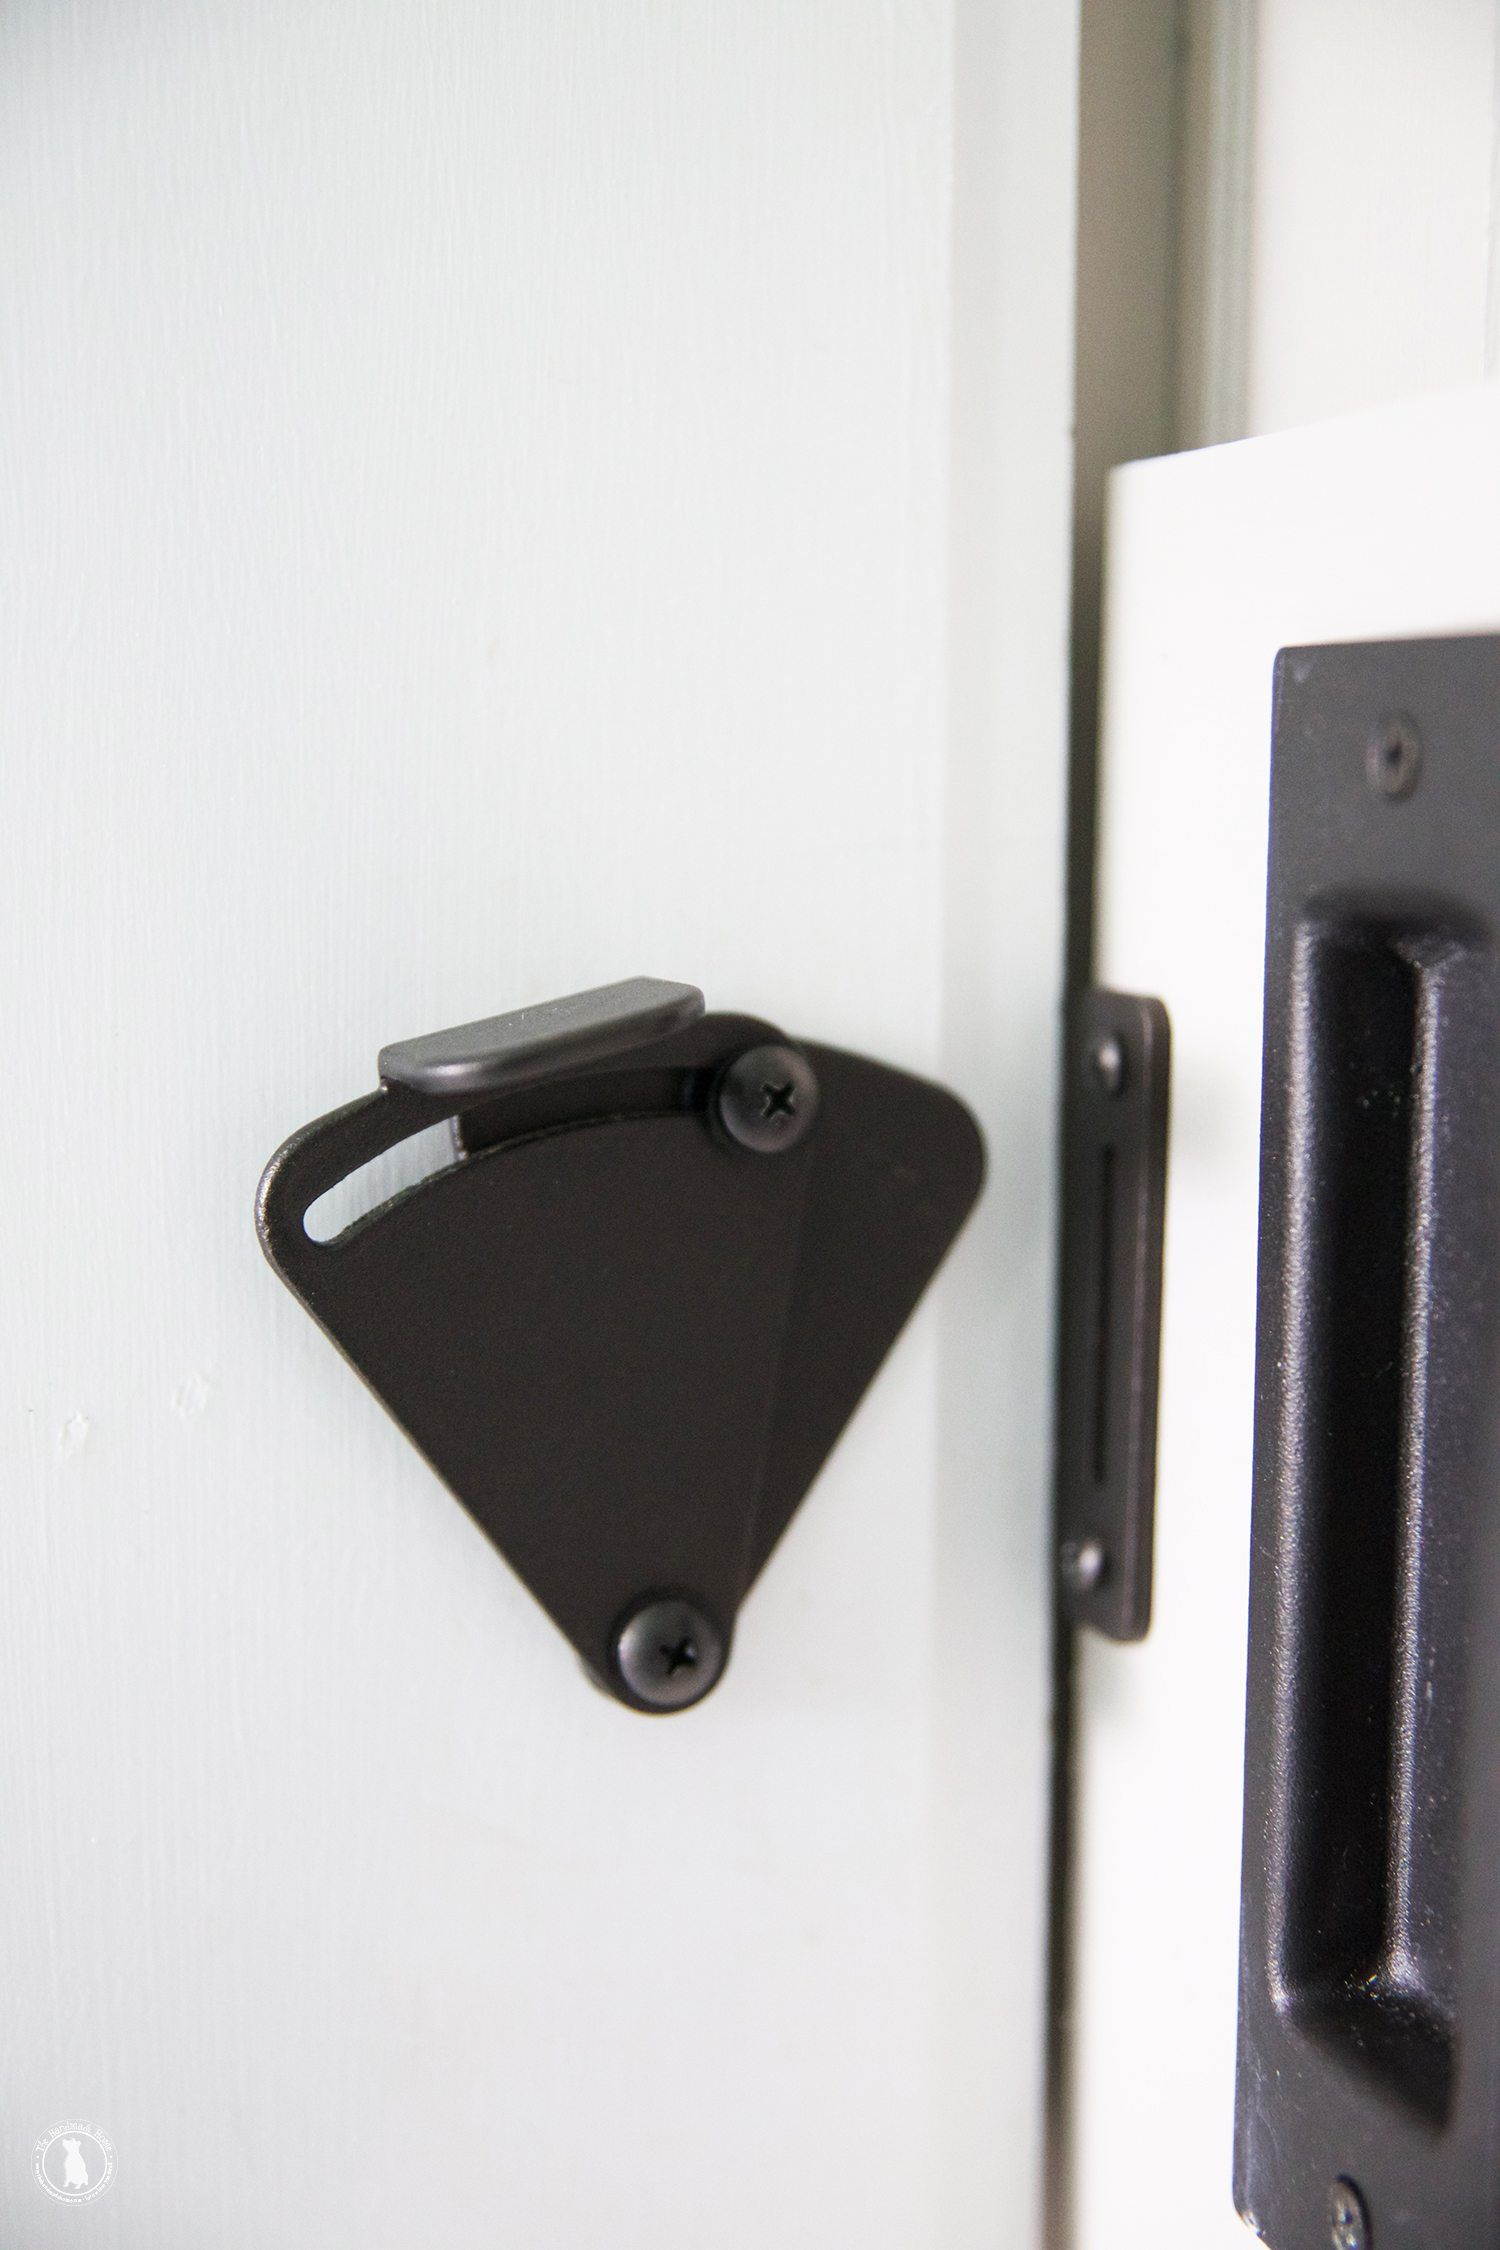 Bathroom stall door latch - How To Get Privacy And Add A Lock To Your Barn Door